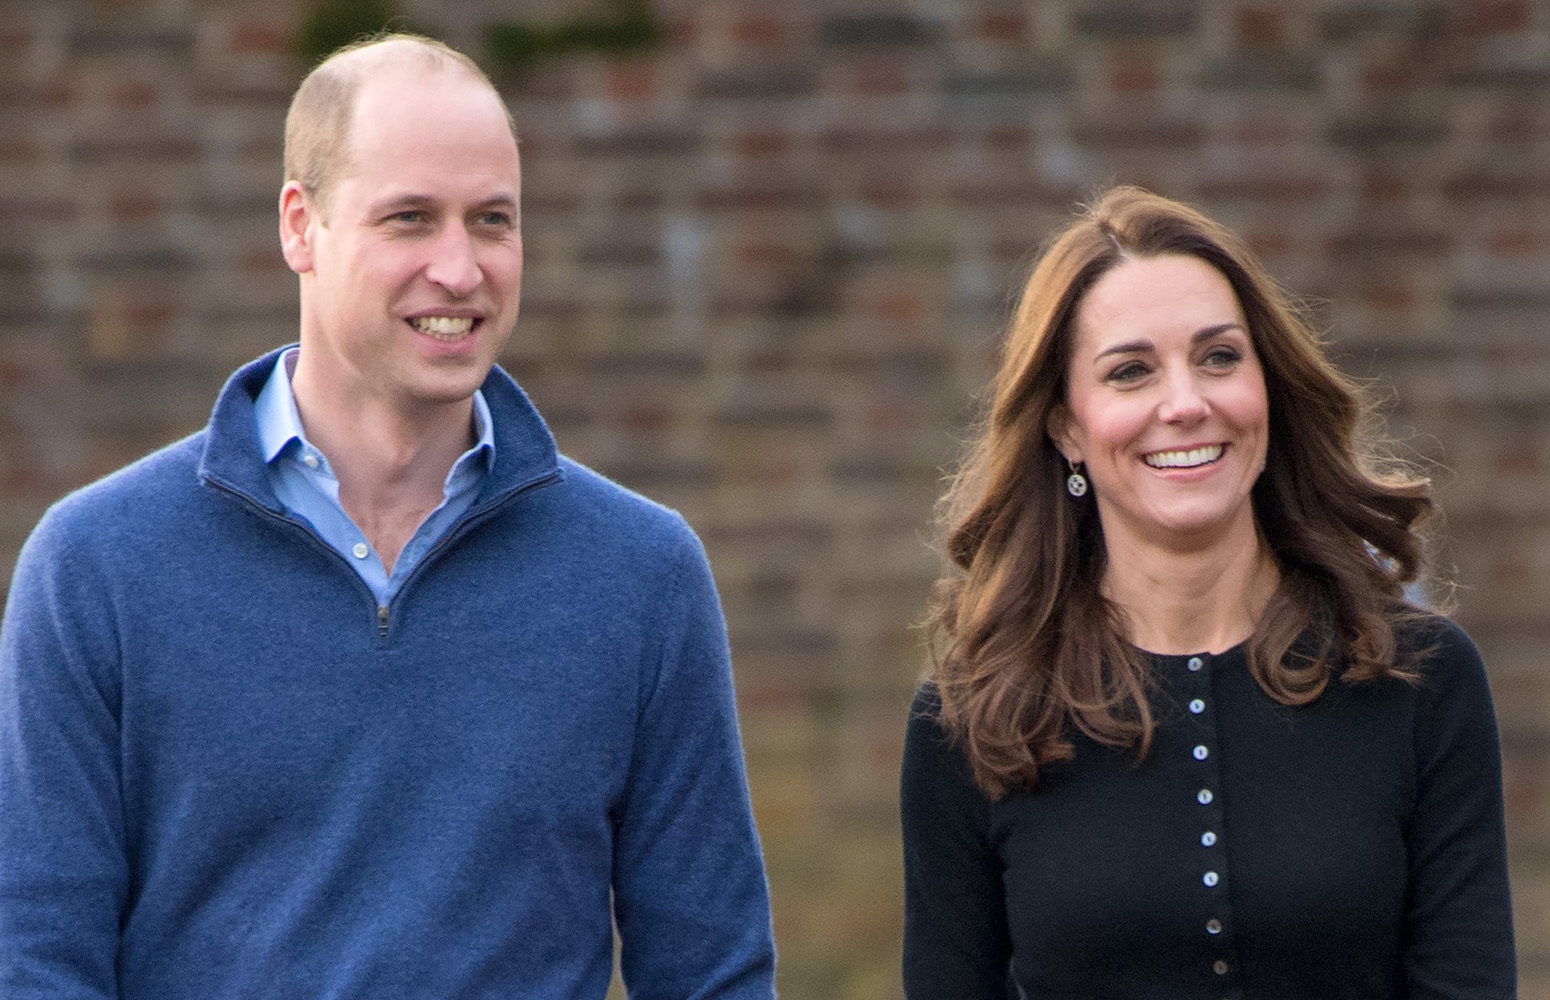 William and Kate praised for changing their social media account to 'more appropriate' name